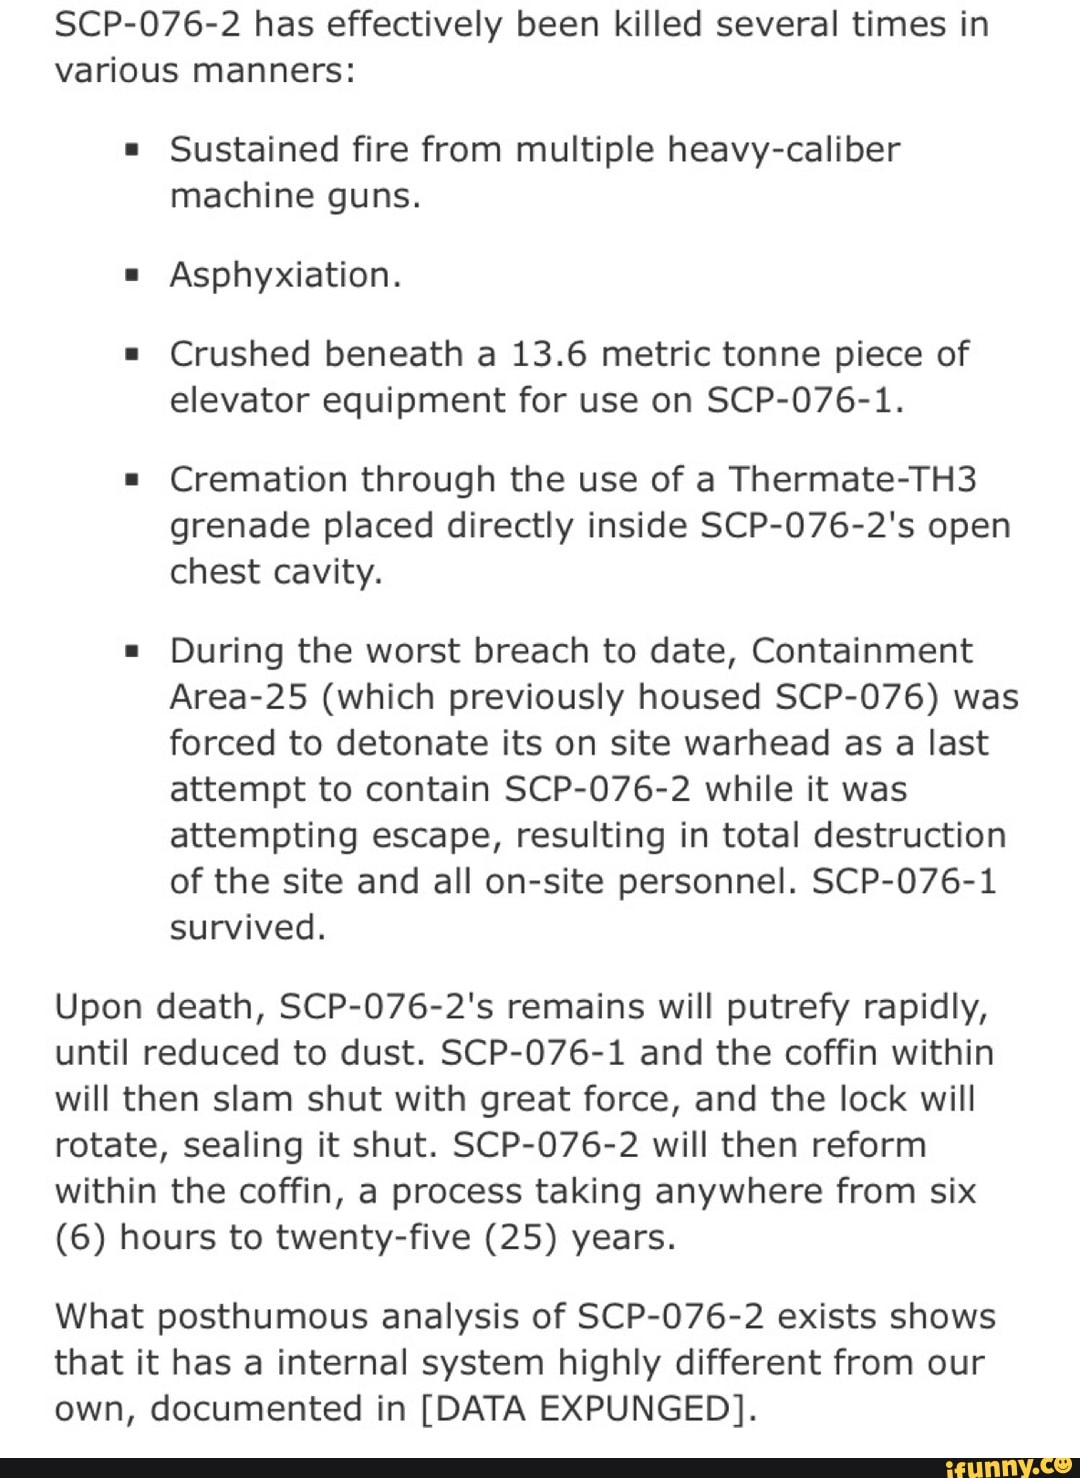 SCP-076-2 has effectively been killed several times in